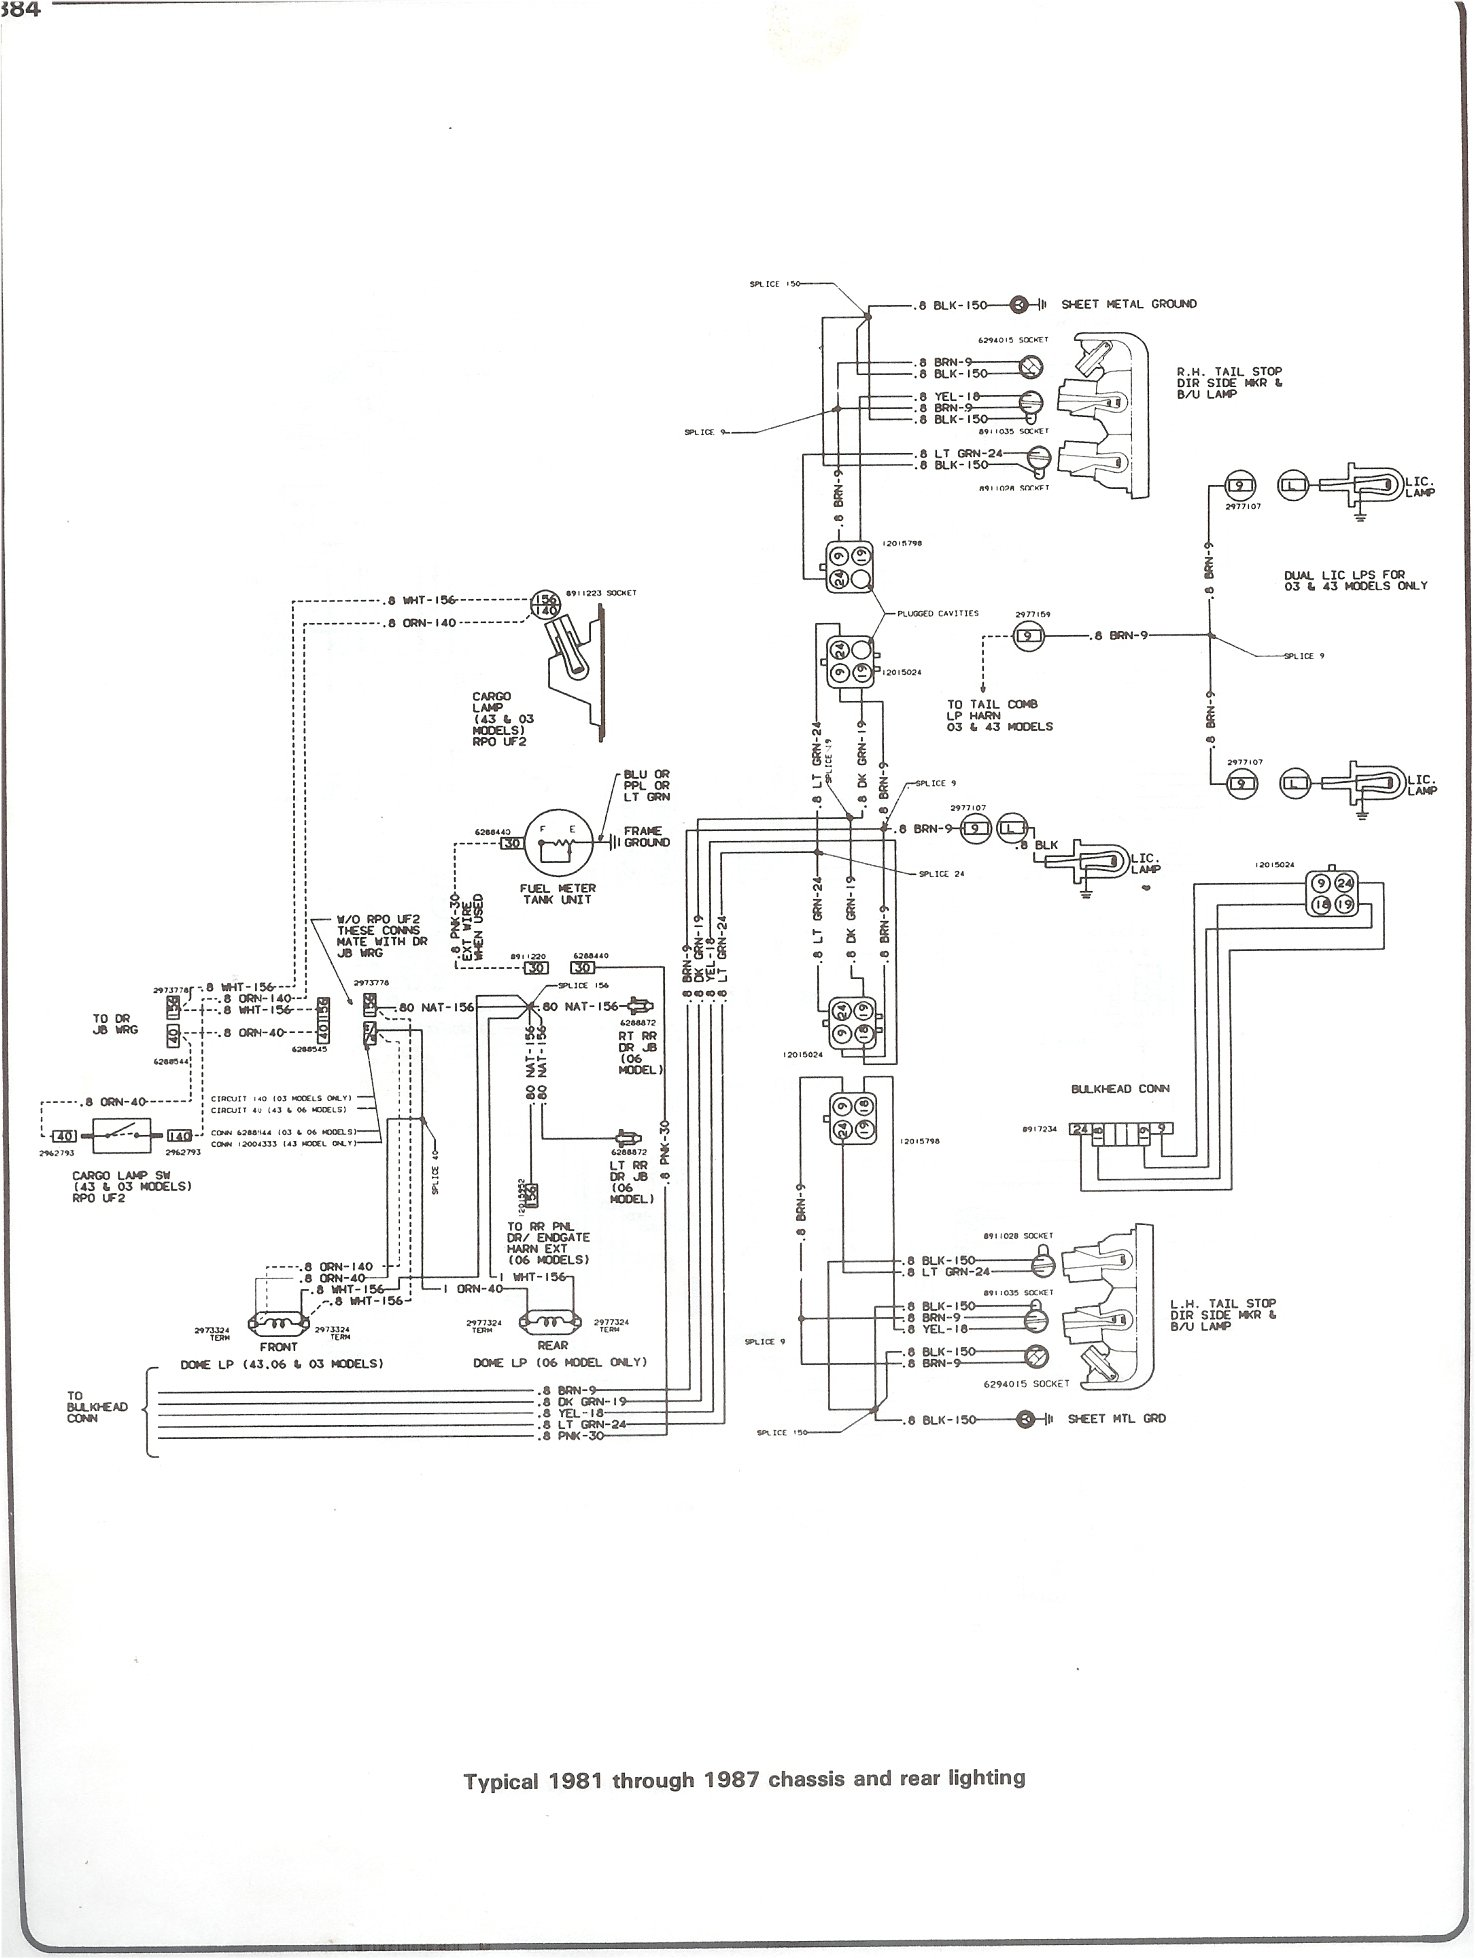 wiring diagrams for 81 chevy el camino